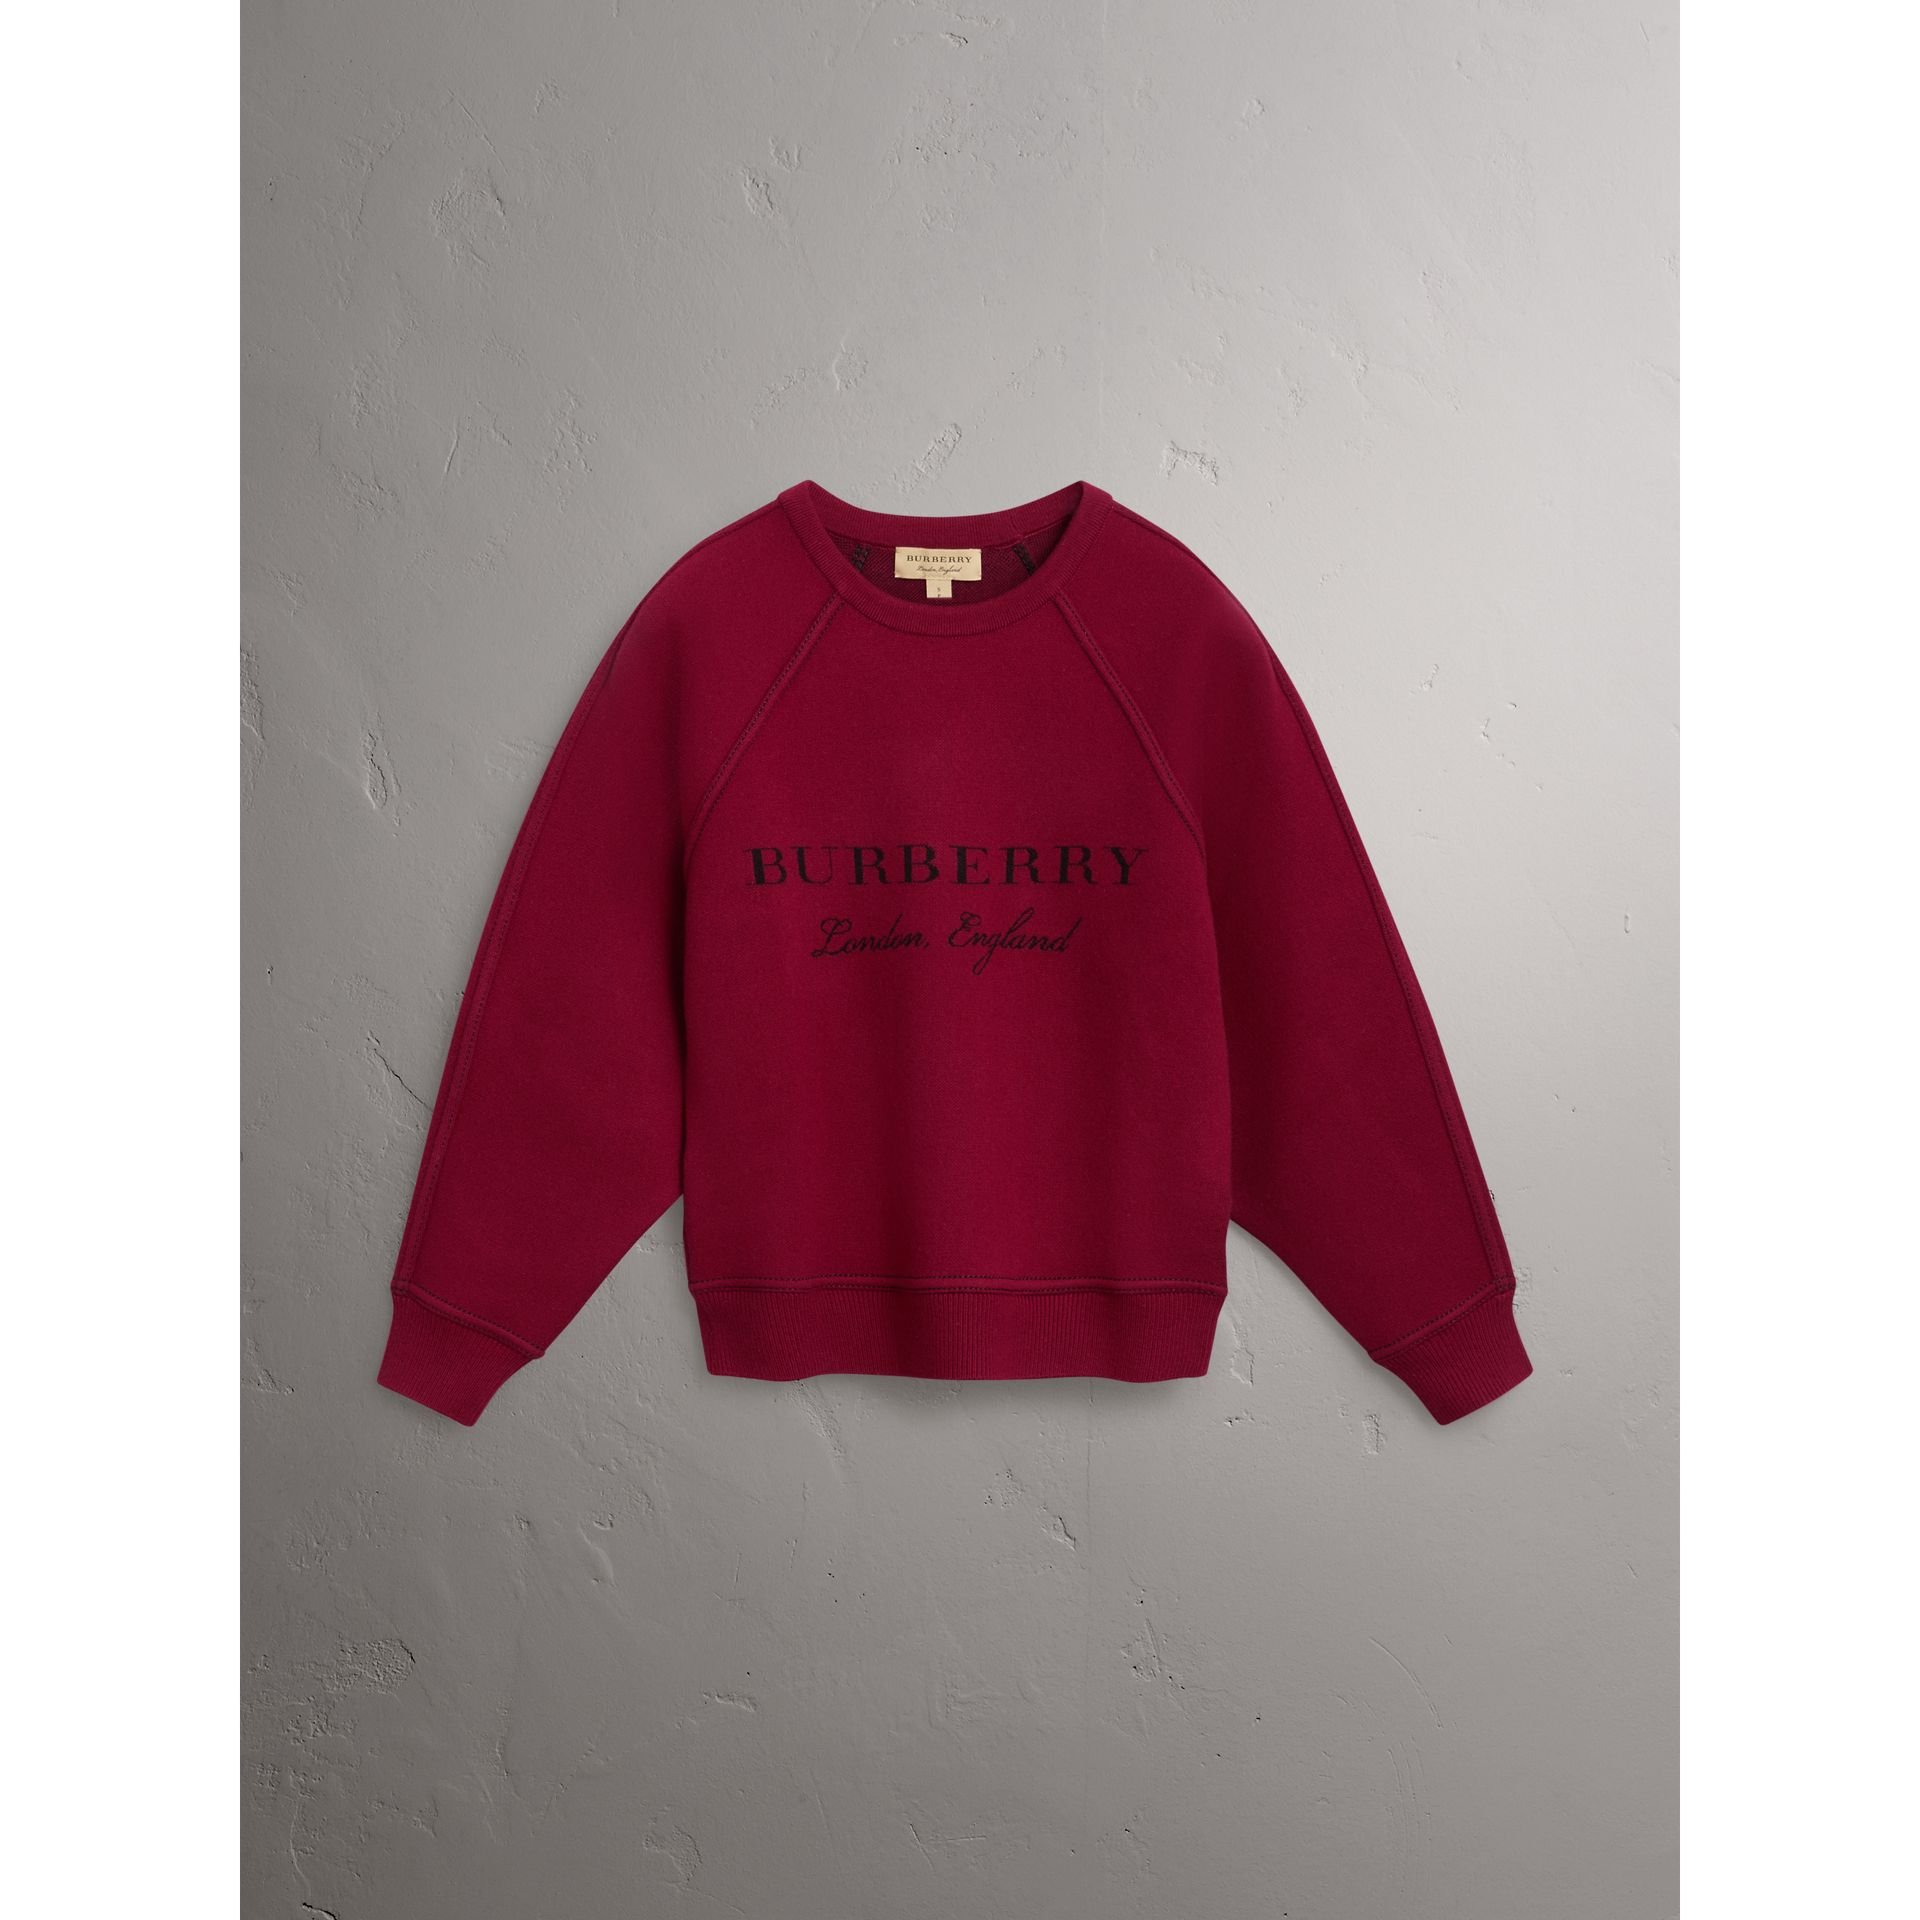 Topstitch Detail Wool Cashmere Blend Sweater in Burgundy - Women | Burberry - gallery image 3